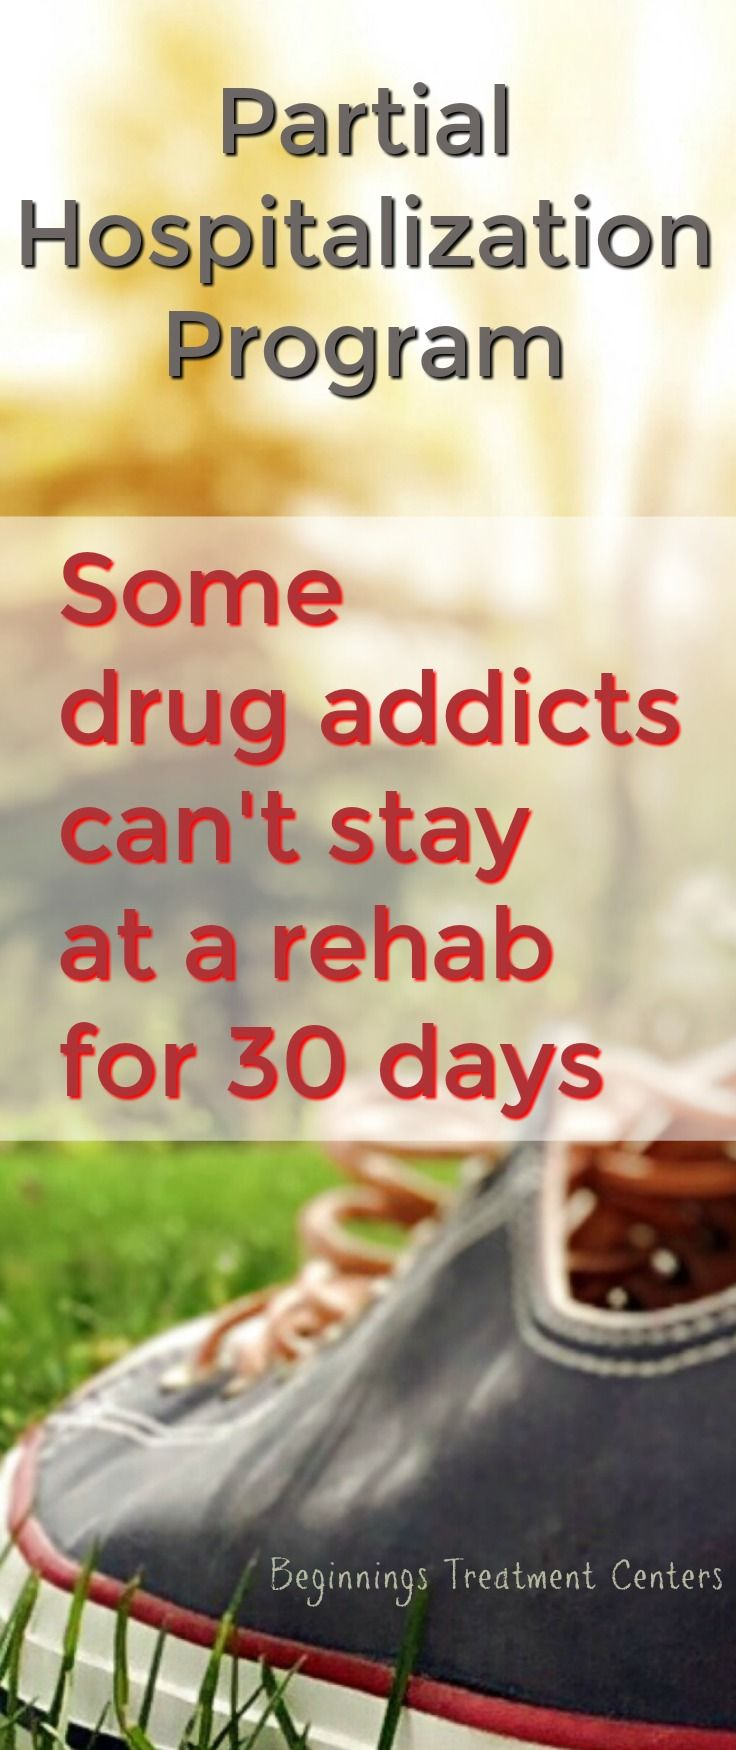 """A Partial Hospitalization Program, or PHP program, is an addiction treatment program designed for individuals who benefit from structured programming but do not require 24-hour supervision or medical assistance. This level of care provides for partial hospitalization or day treatment services, and is sometimes referred to as a """"day program"""" http://stfi.re/yagydrg"""